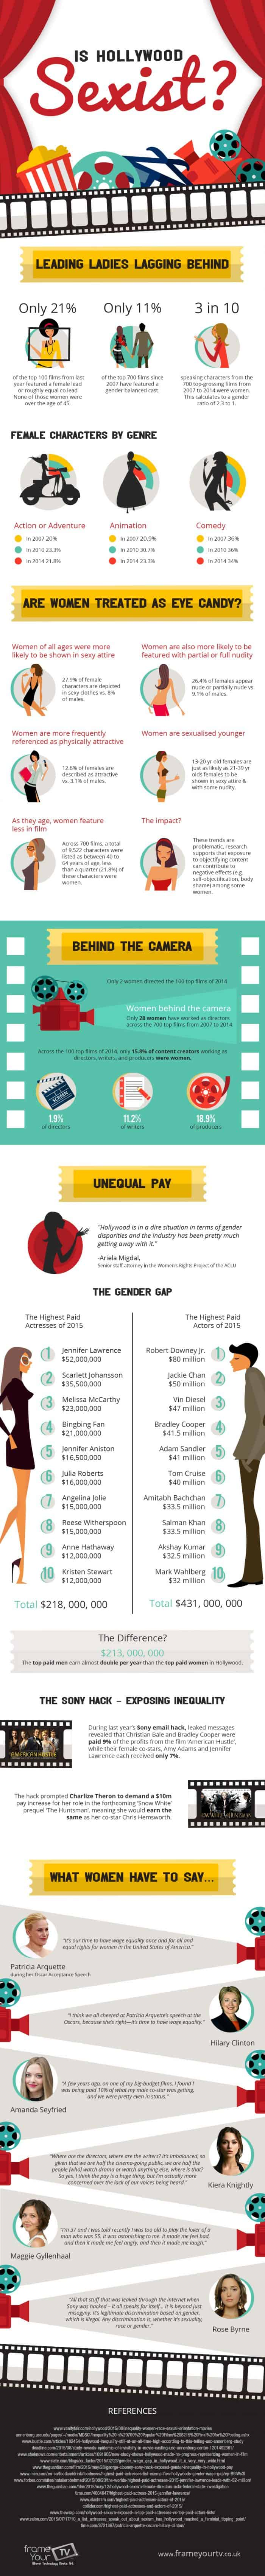 Hollywood Sexism infographic